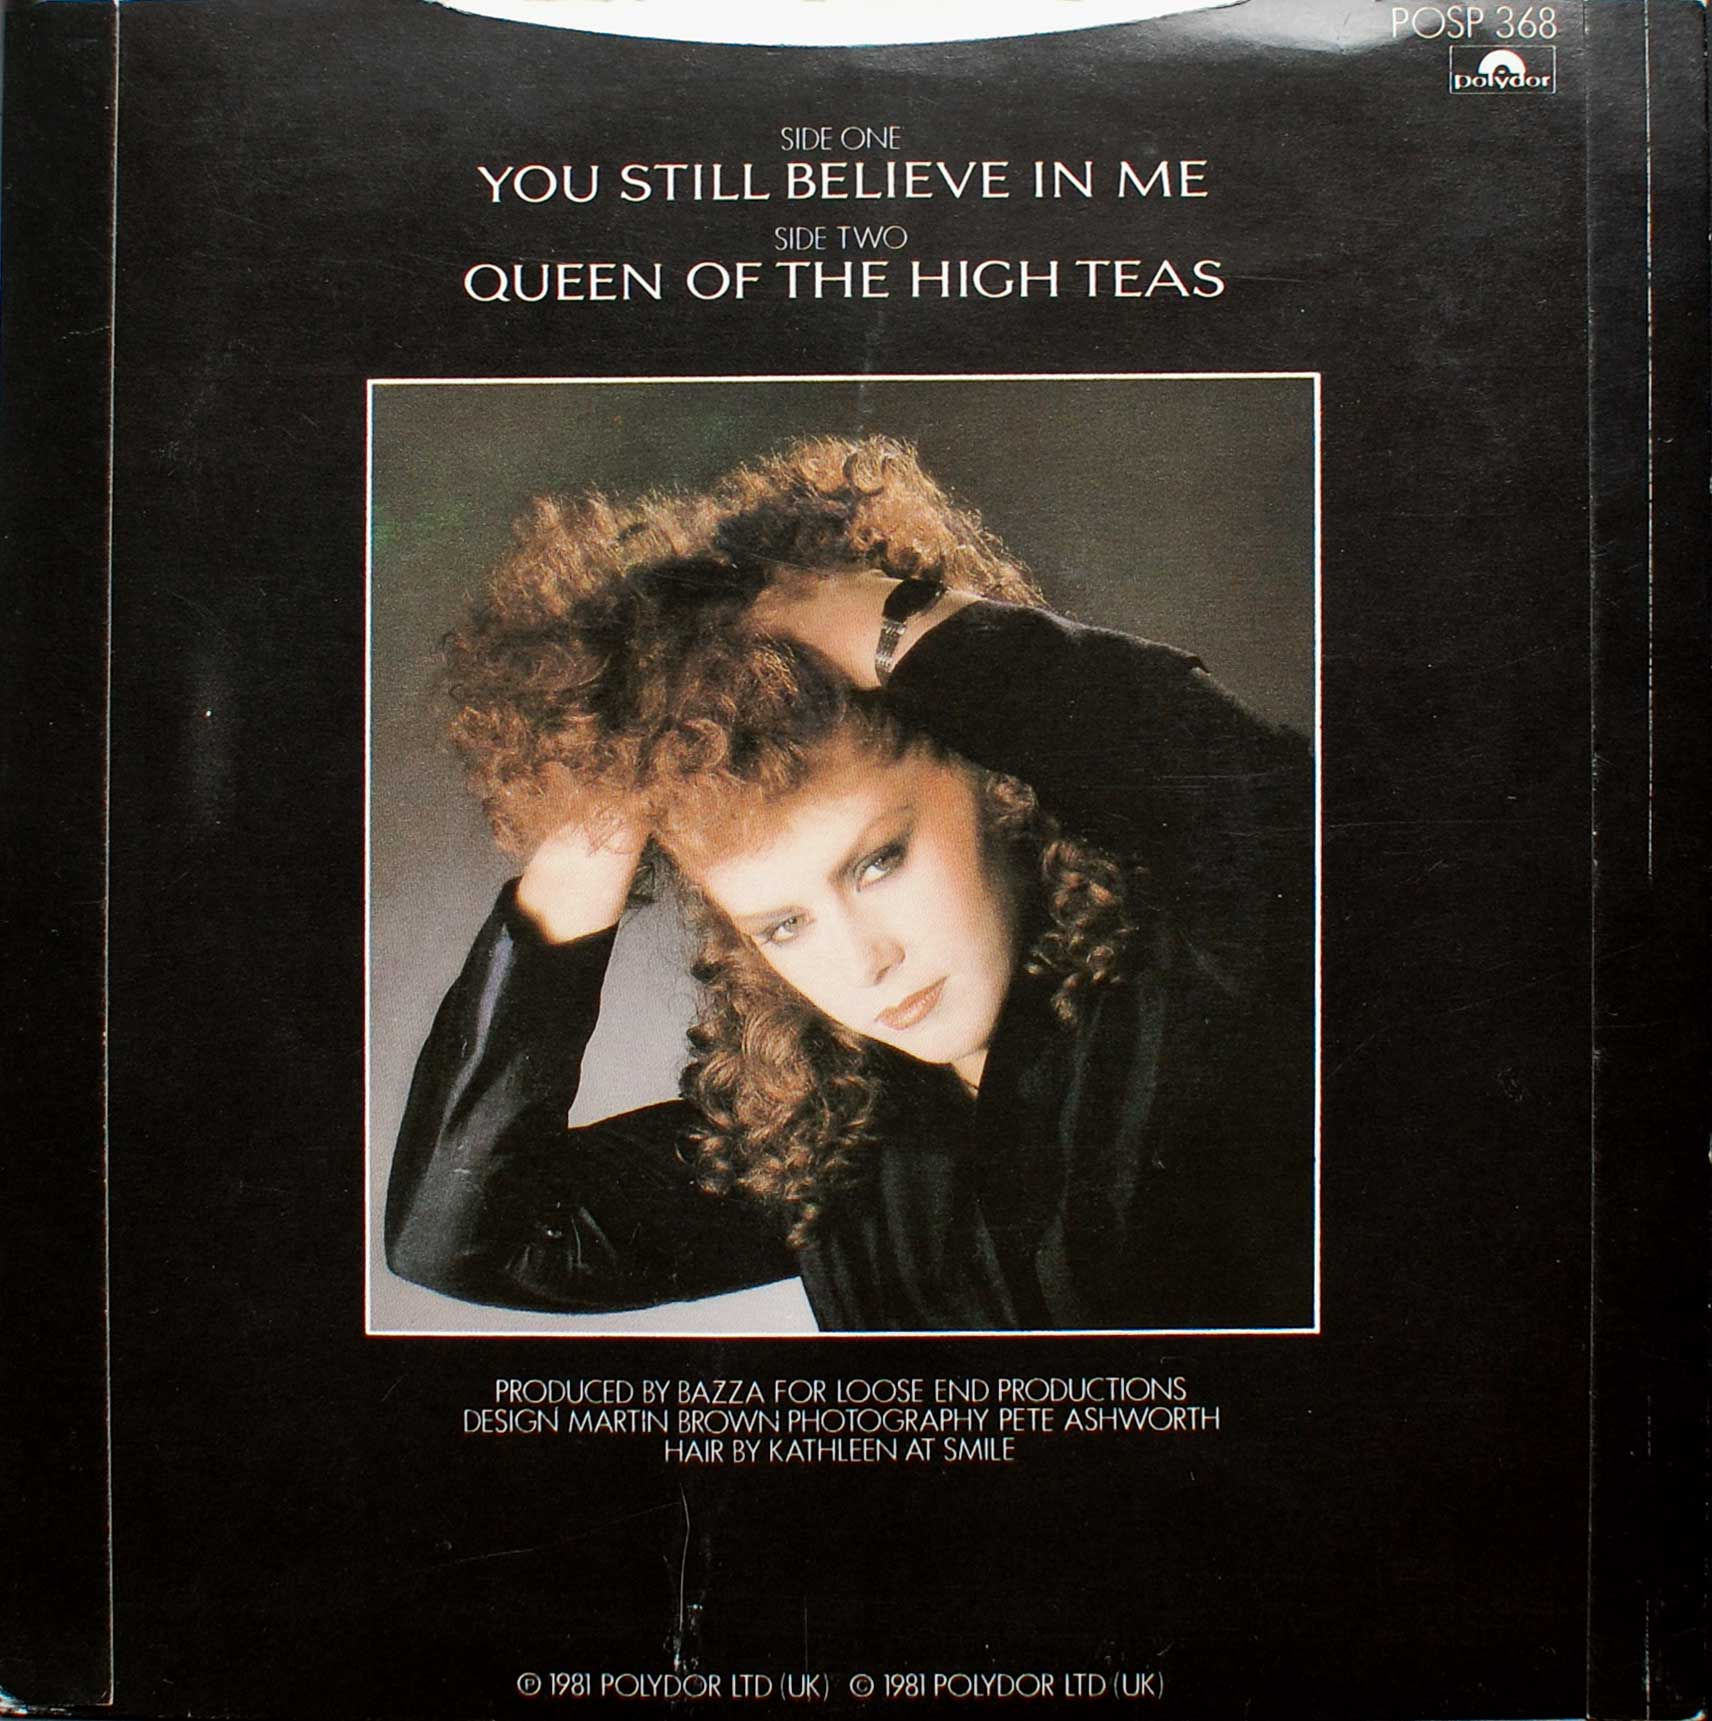 You Still Believe in Me (picture sleeve, B side)